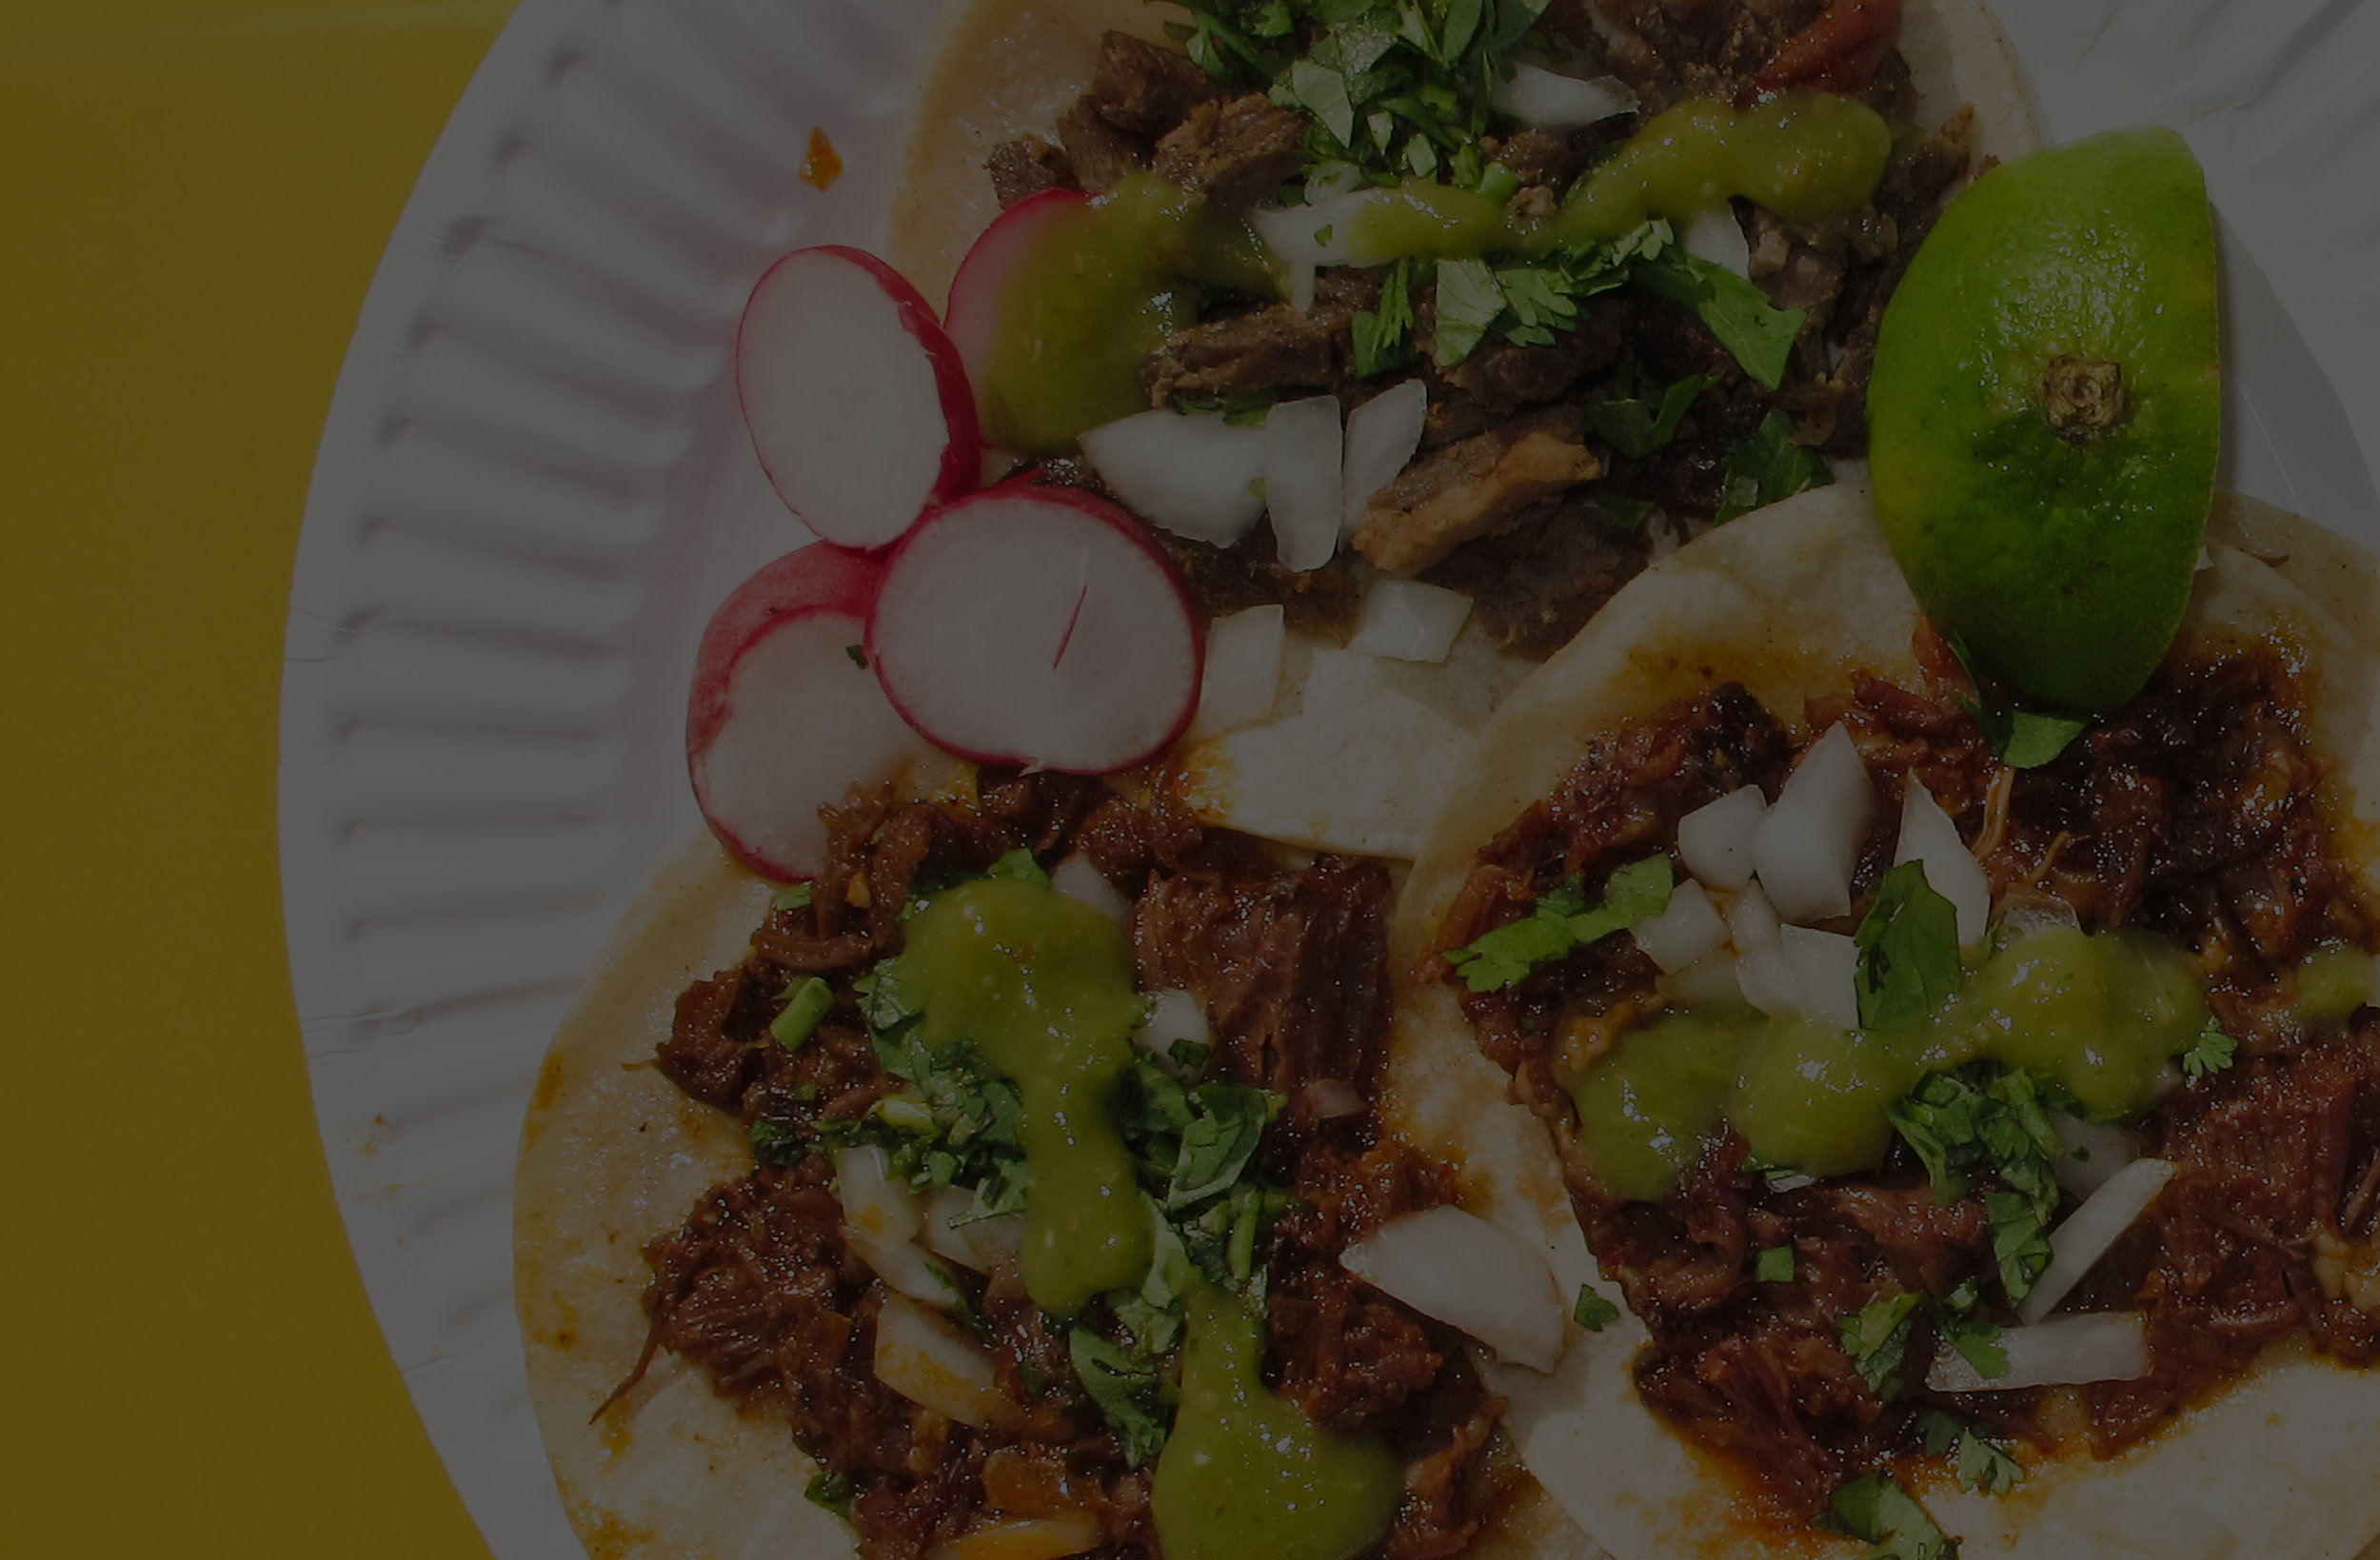 FRESH, AUTHENTICMEXICAN FOOD  - 84 Hoyt St. Brooklyn, NYOpen Everyday 8:00 AM – 9:00 PM(718) 802-1661